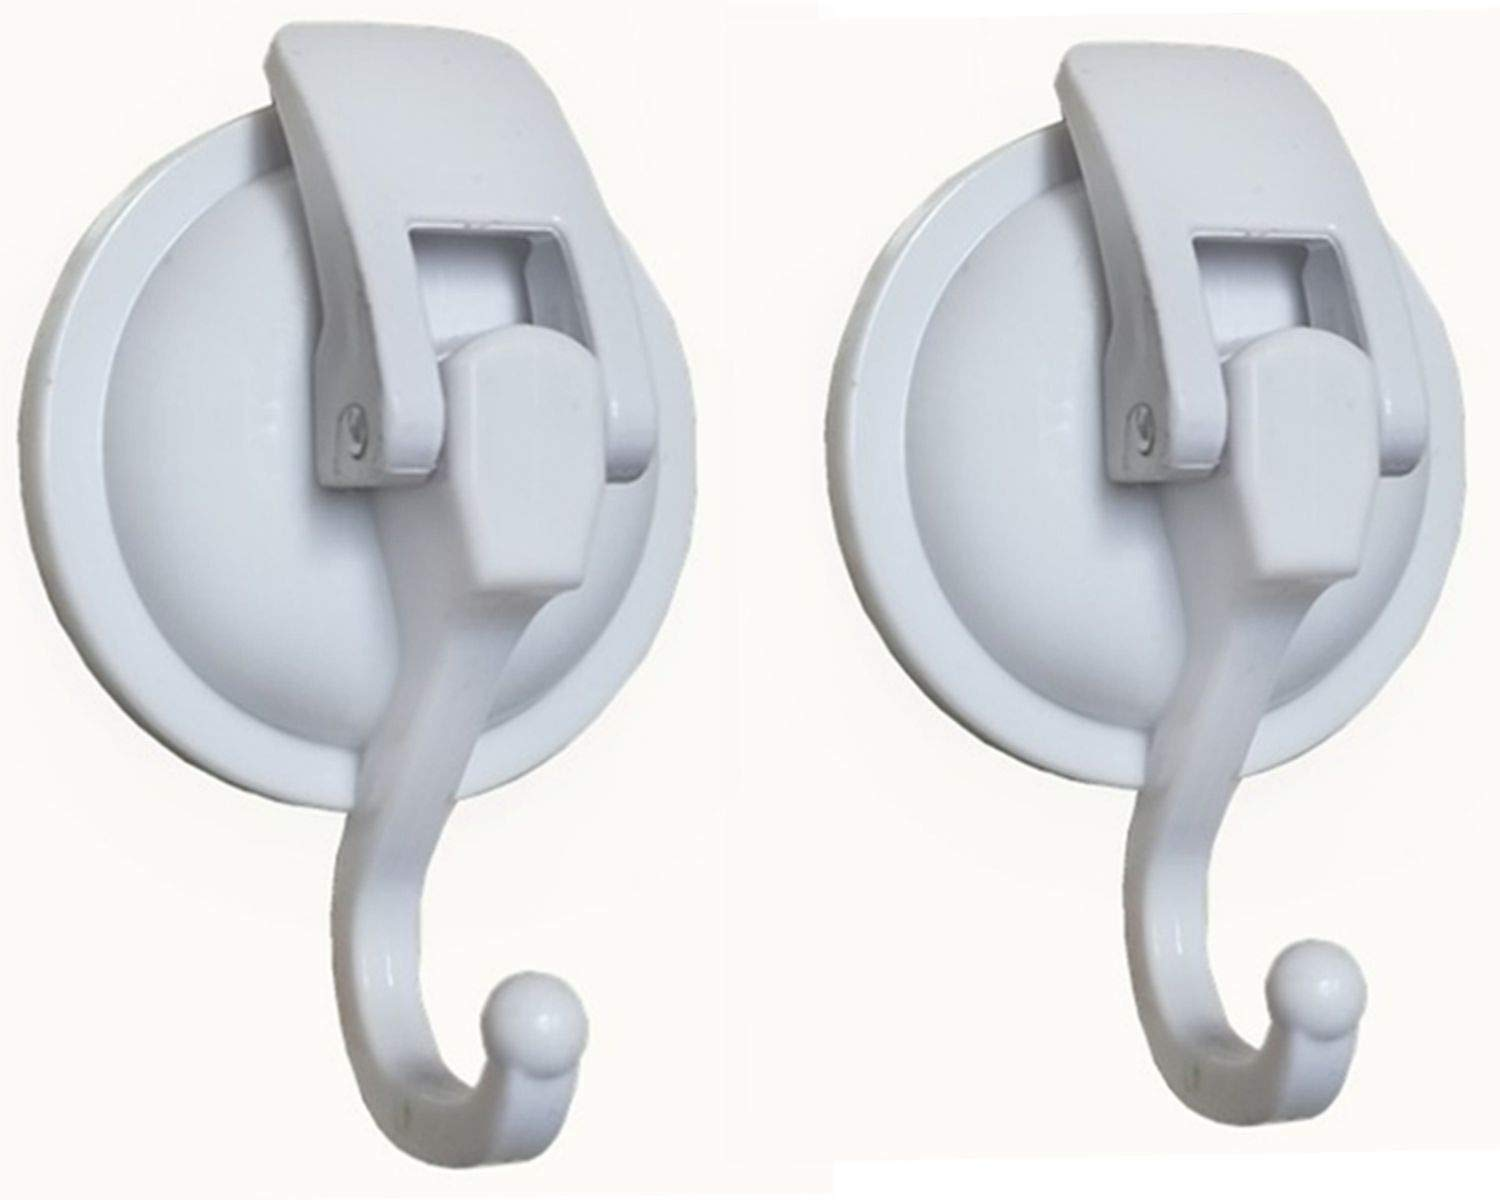 Vacuum Suction Cups Hooks (2Pack) Shower Hooks Wall Mounted Hooks Specialized for Kitchen& Bathroom& Restroom Organization, by iRomic iRomic Accessories